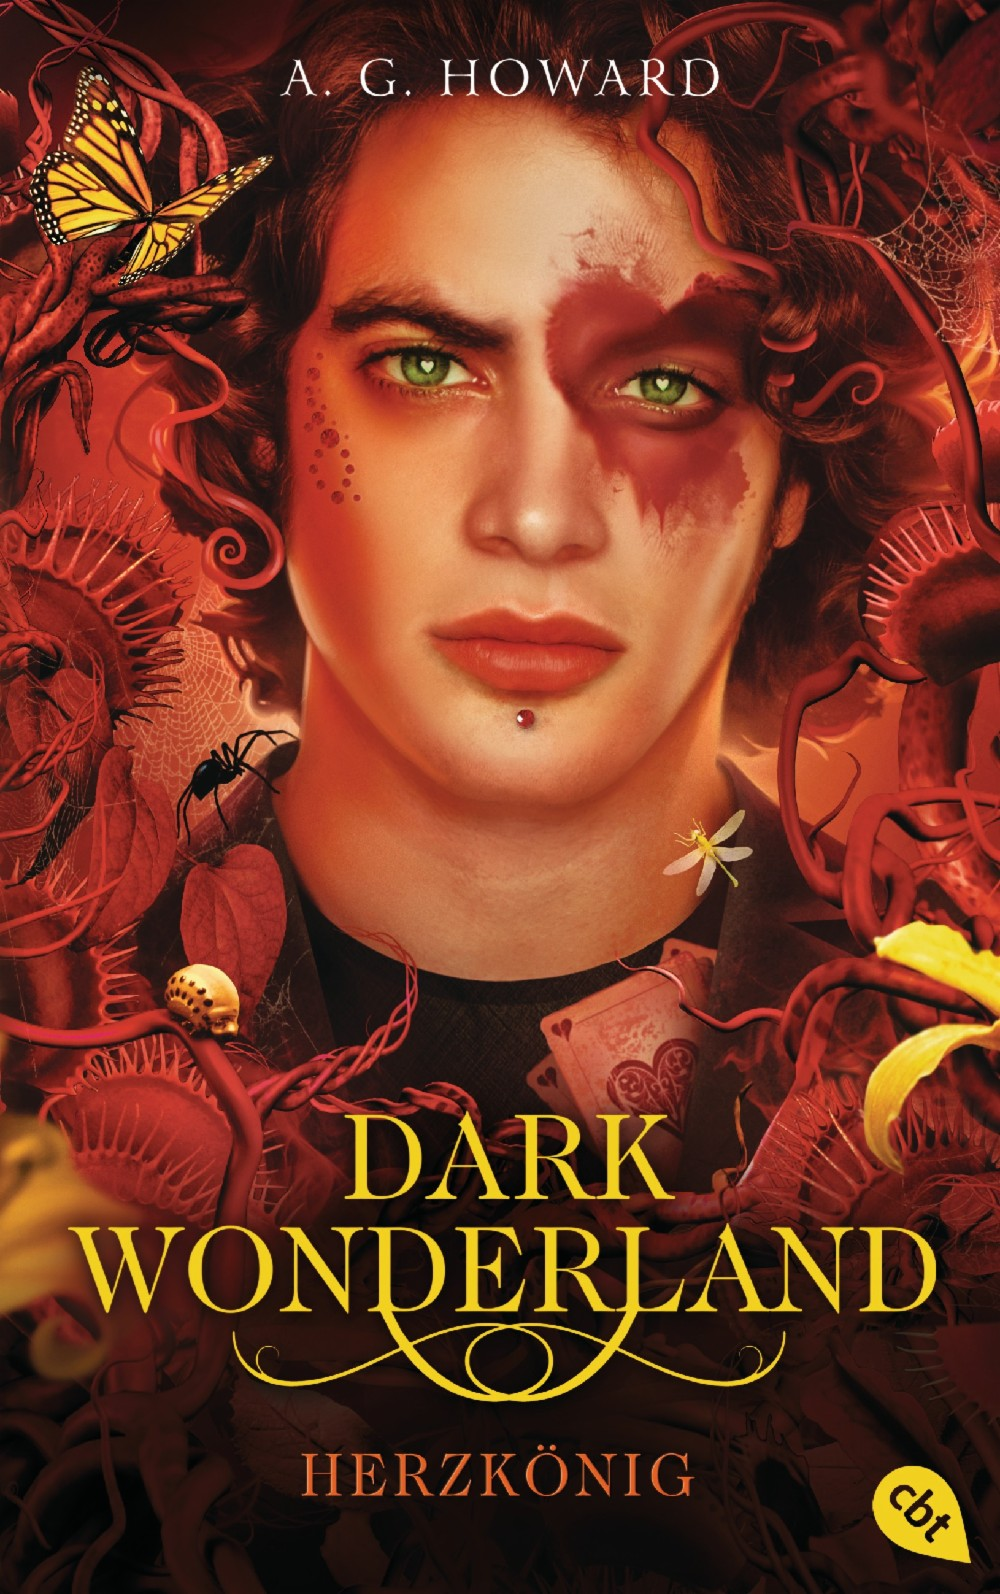 https://www.randomhouse.de/Buch/Dark-Wonderland-Herzkoenig/A.G.-Howard/cbt/e491601.rhd